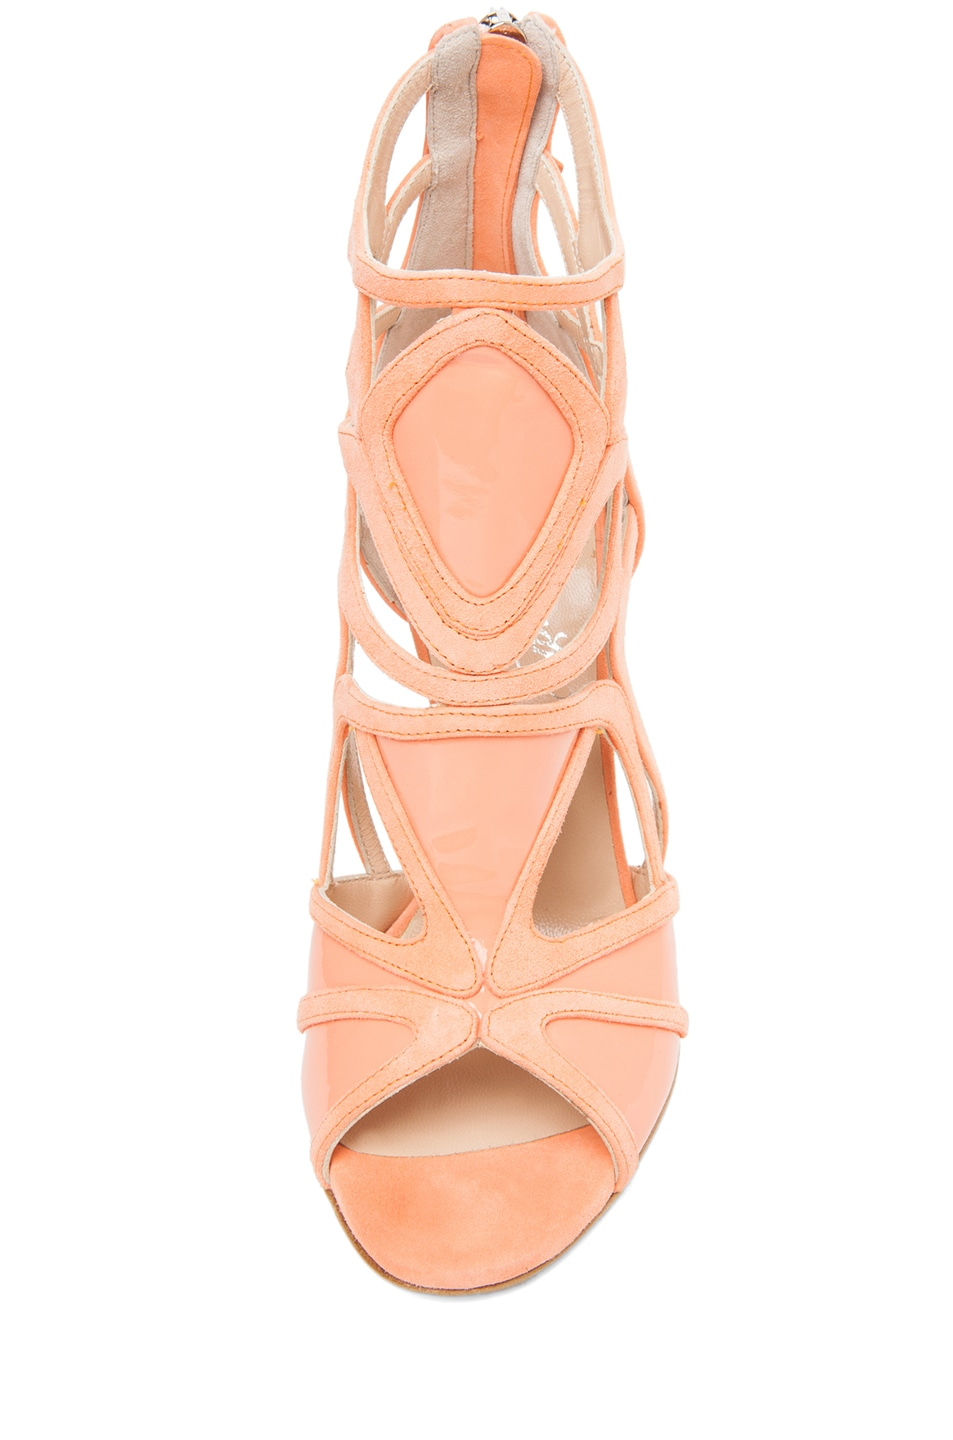 Image 4 of Alejandro Ingelmo Odessy Geometric Open Toe Bootie in Coral